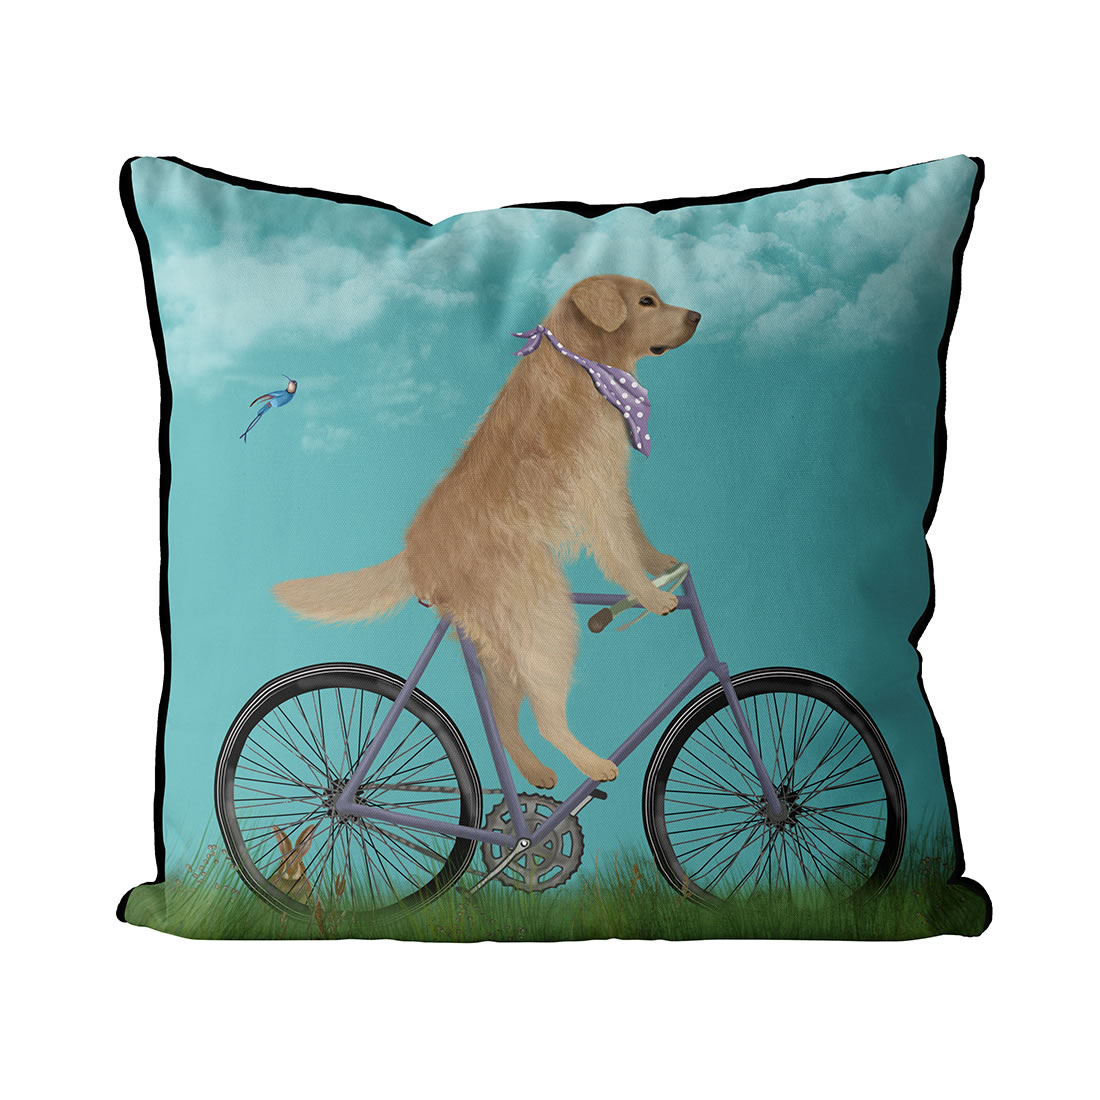 Golden Retriever on Bicycle, Sky Pillow